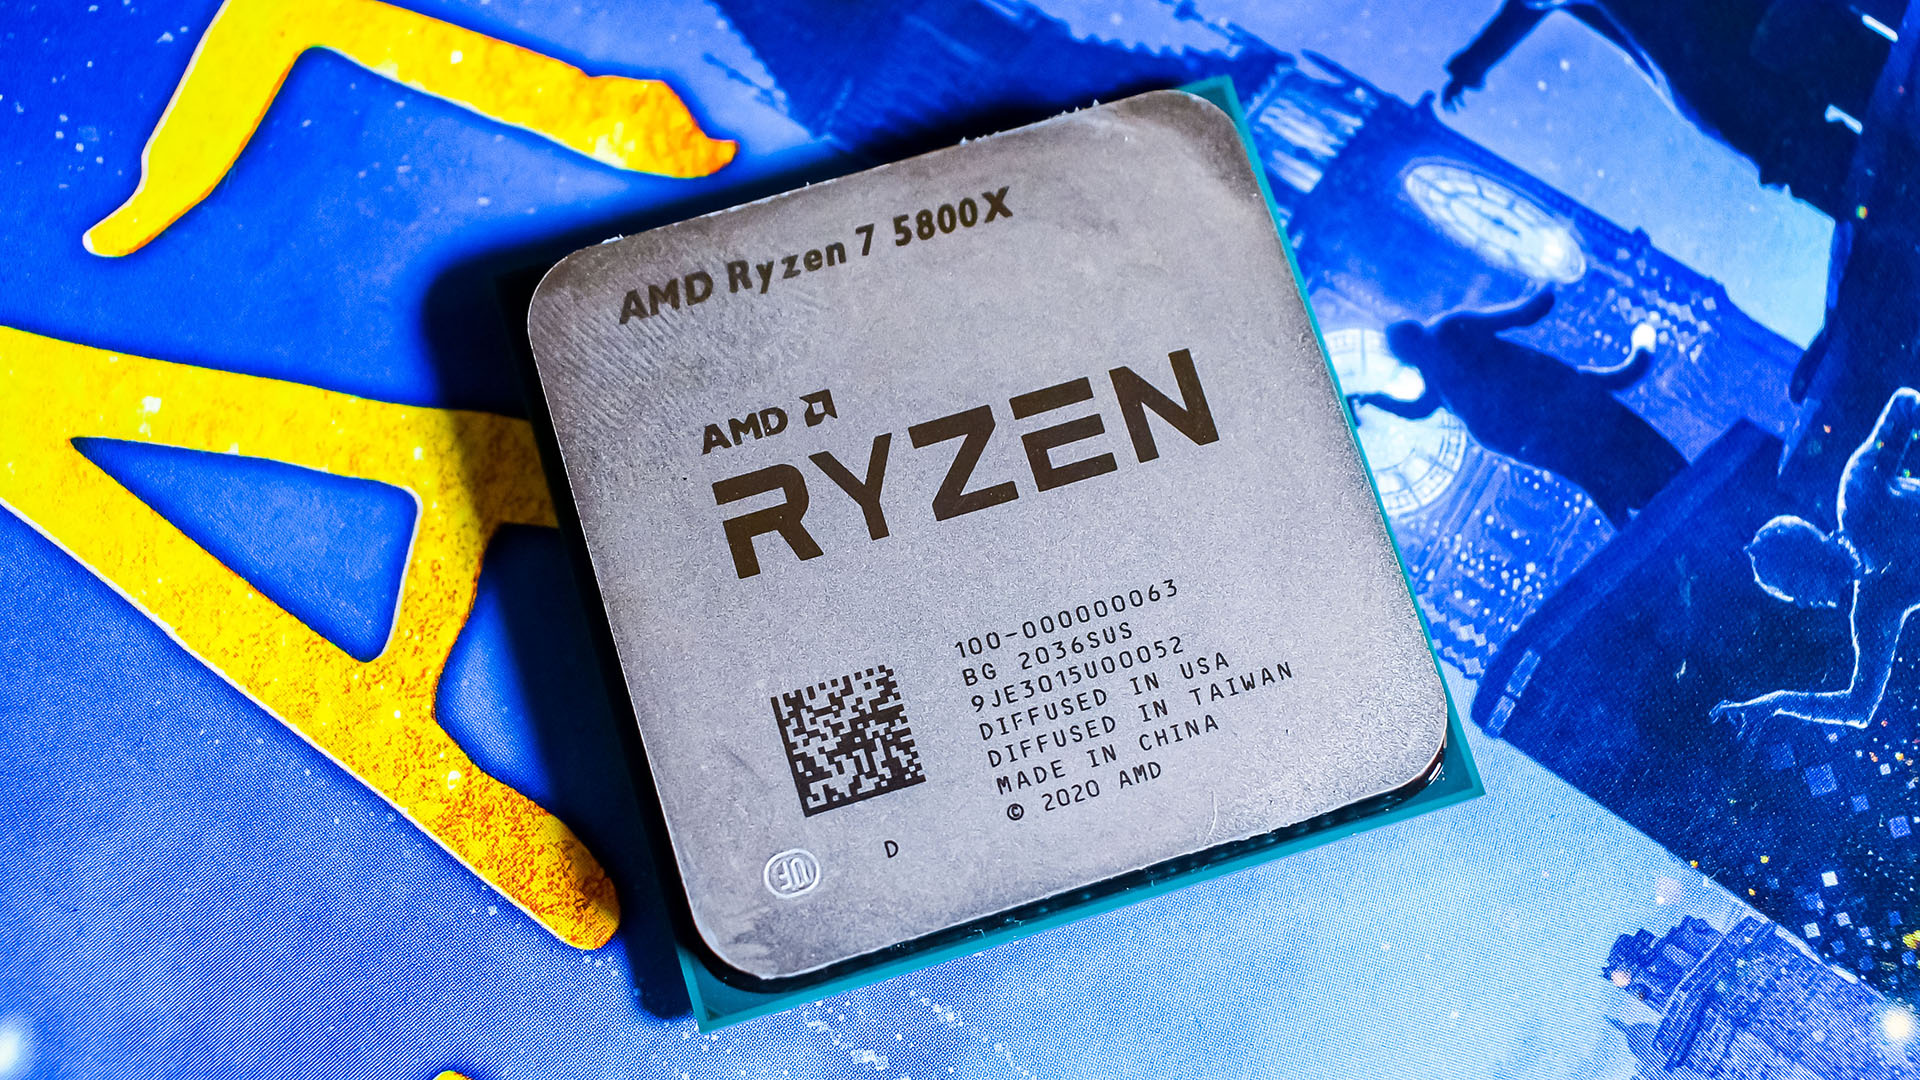 amd's-next-gen-ryzen-cpus-and-rdna-3-gpus-could-launch-together-at-end-of-2022